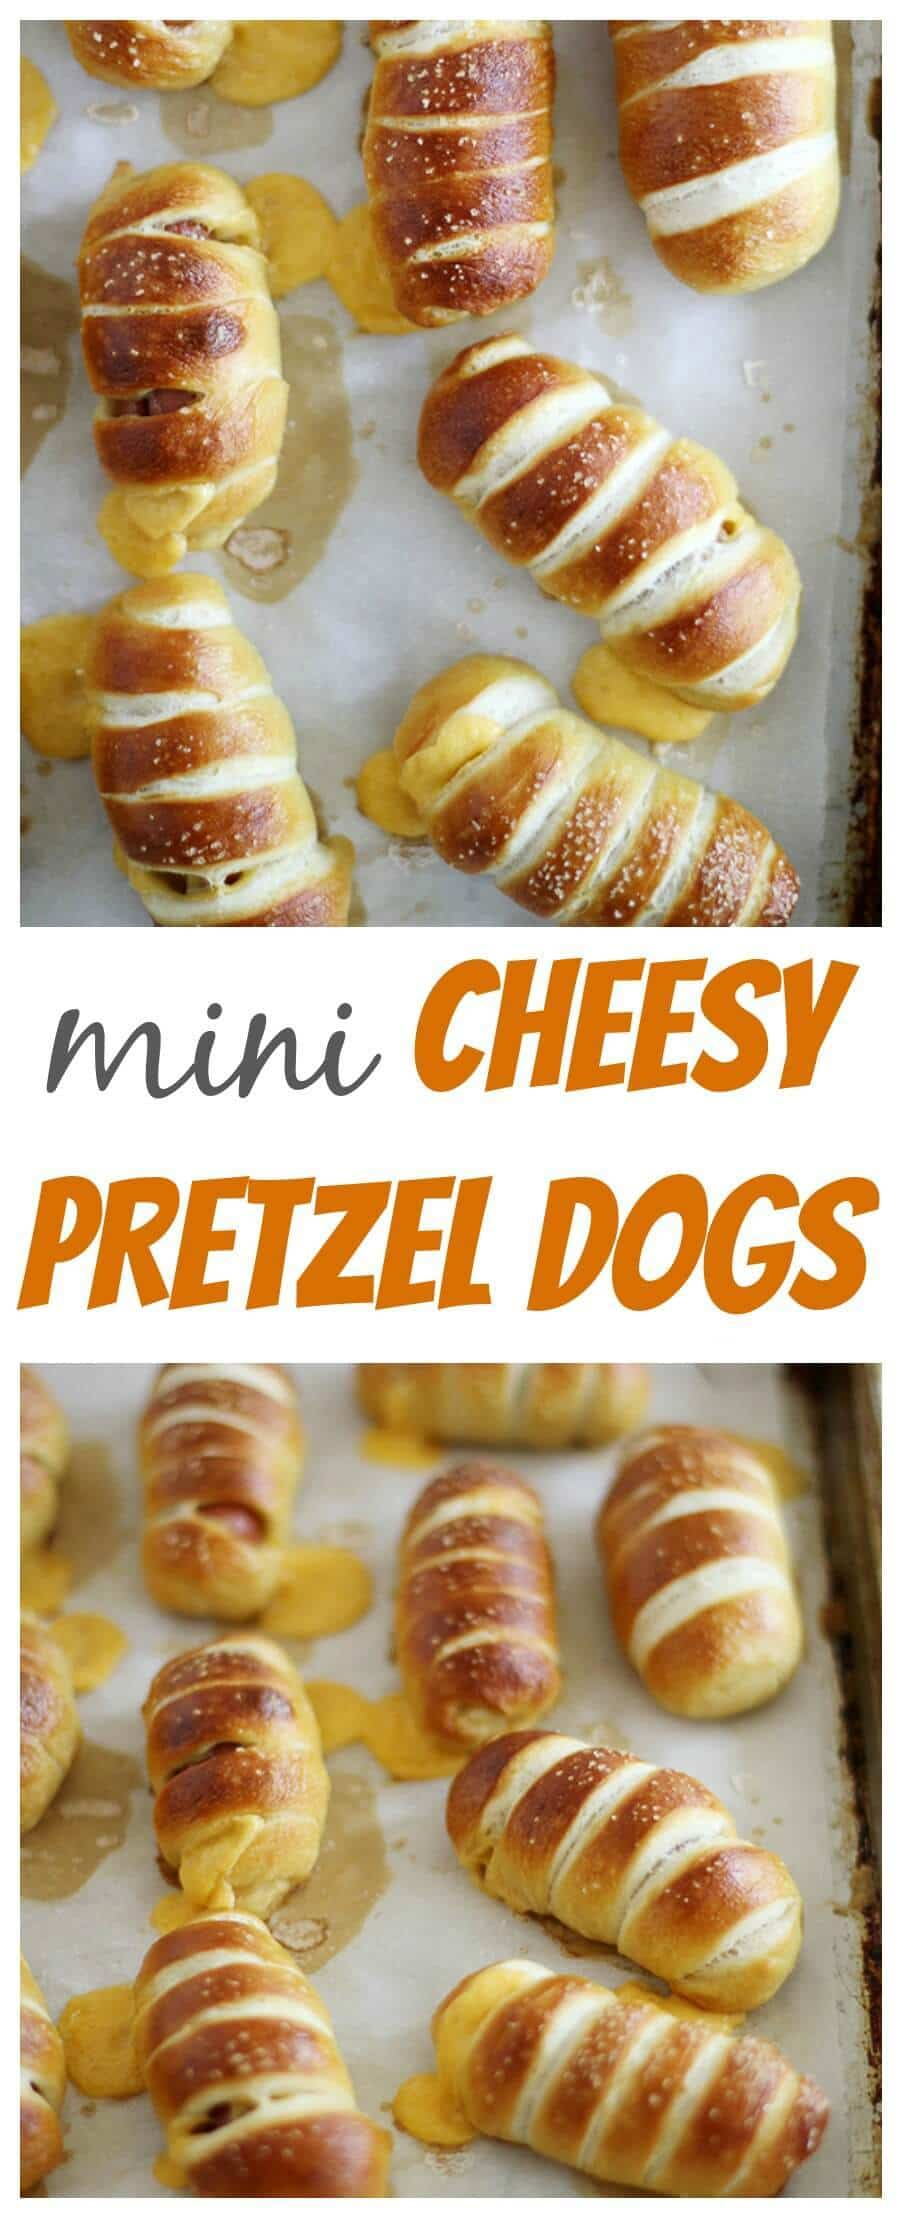 Mini Cheesy Pretzel Dogs. Bite sized hotdogs wrapped in soft pretzels and stuffed with cheese. WOW!